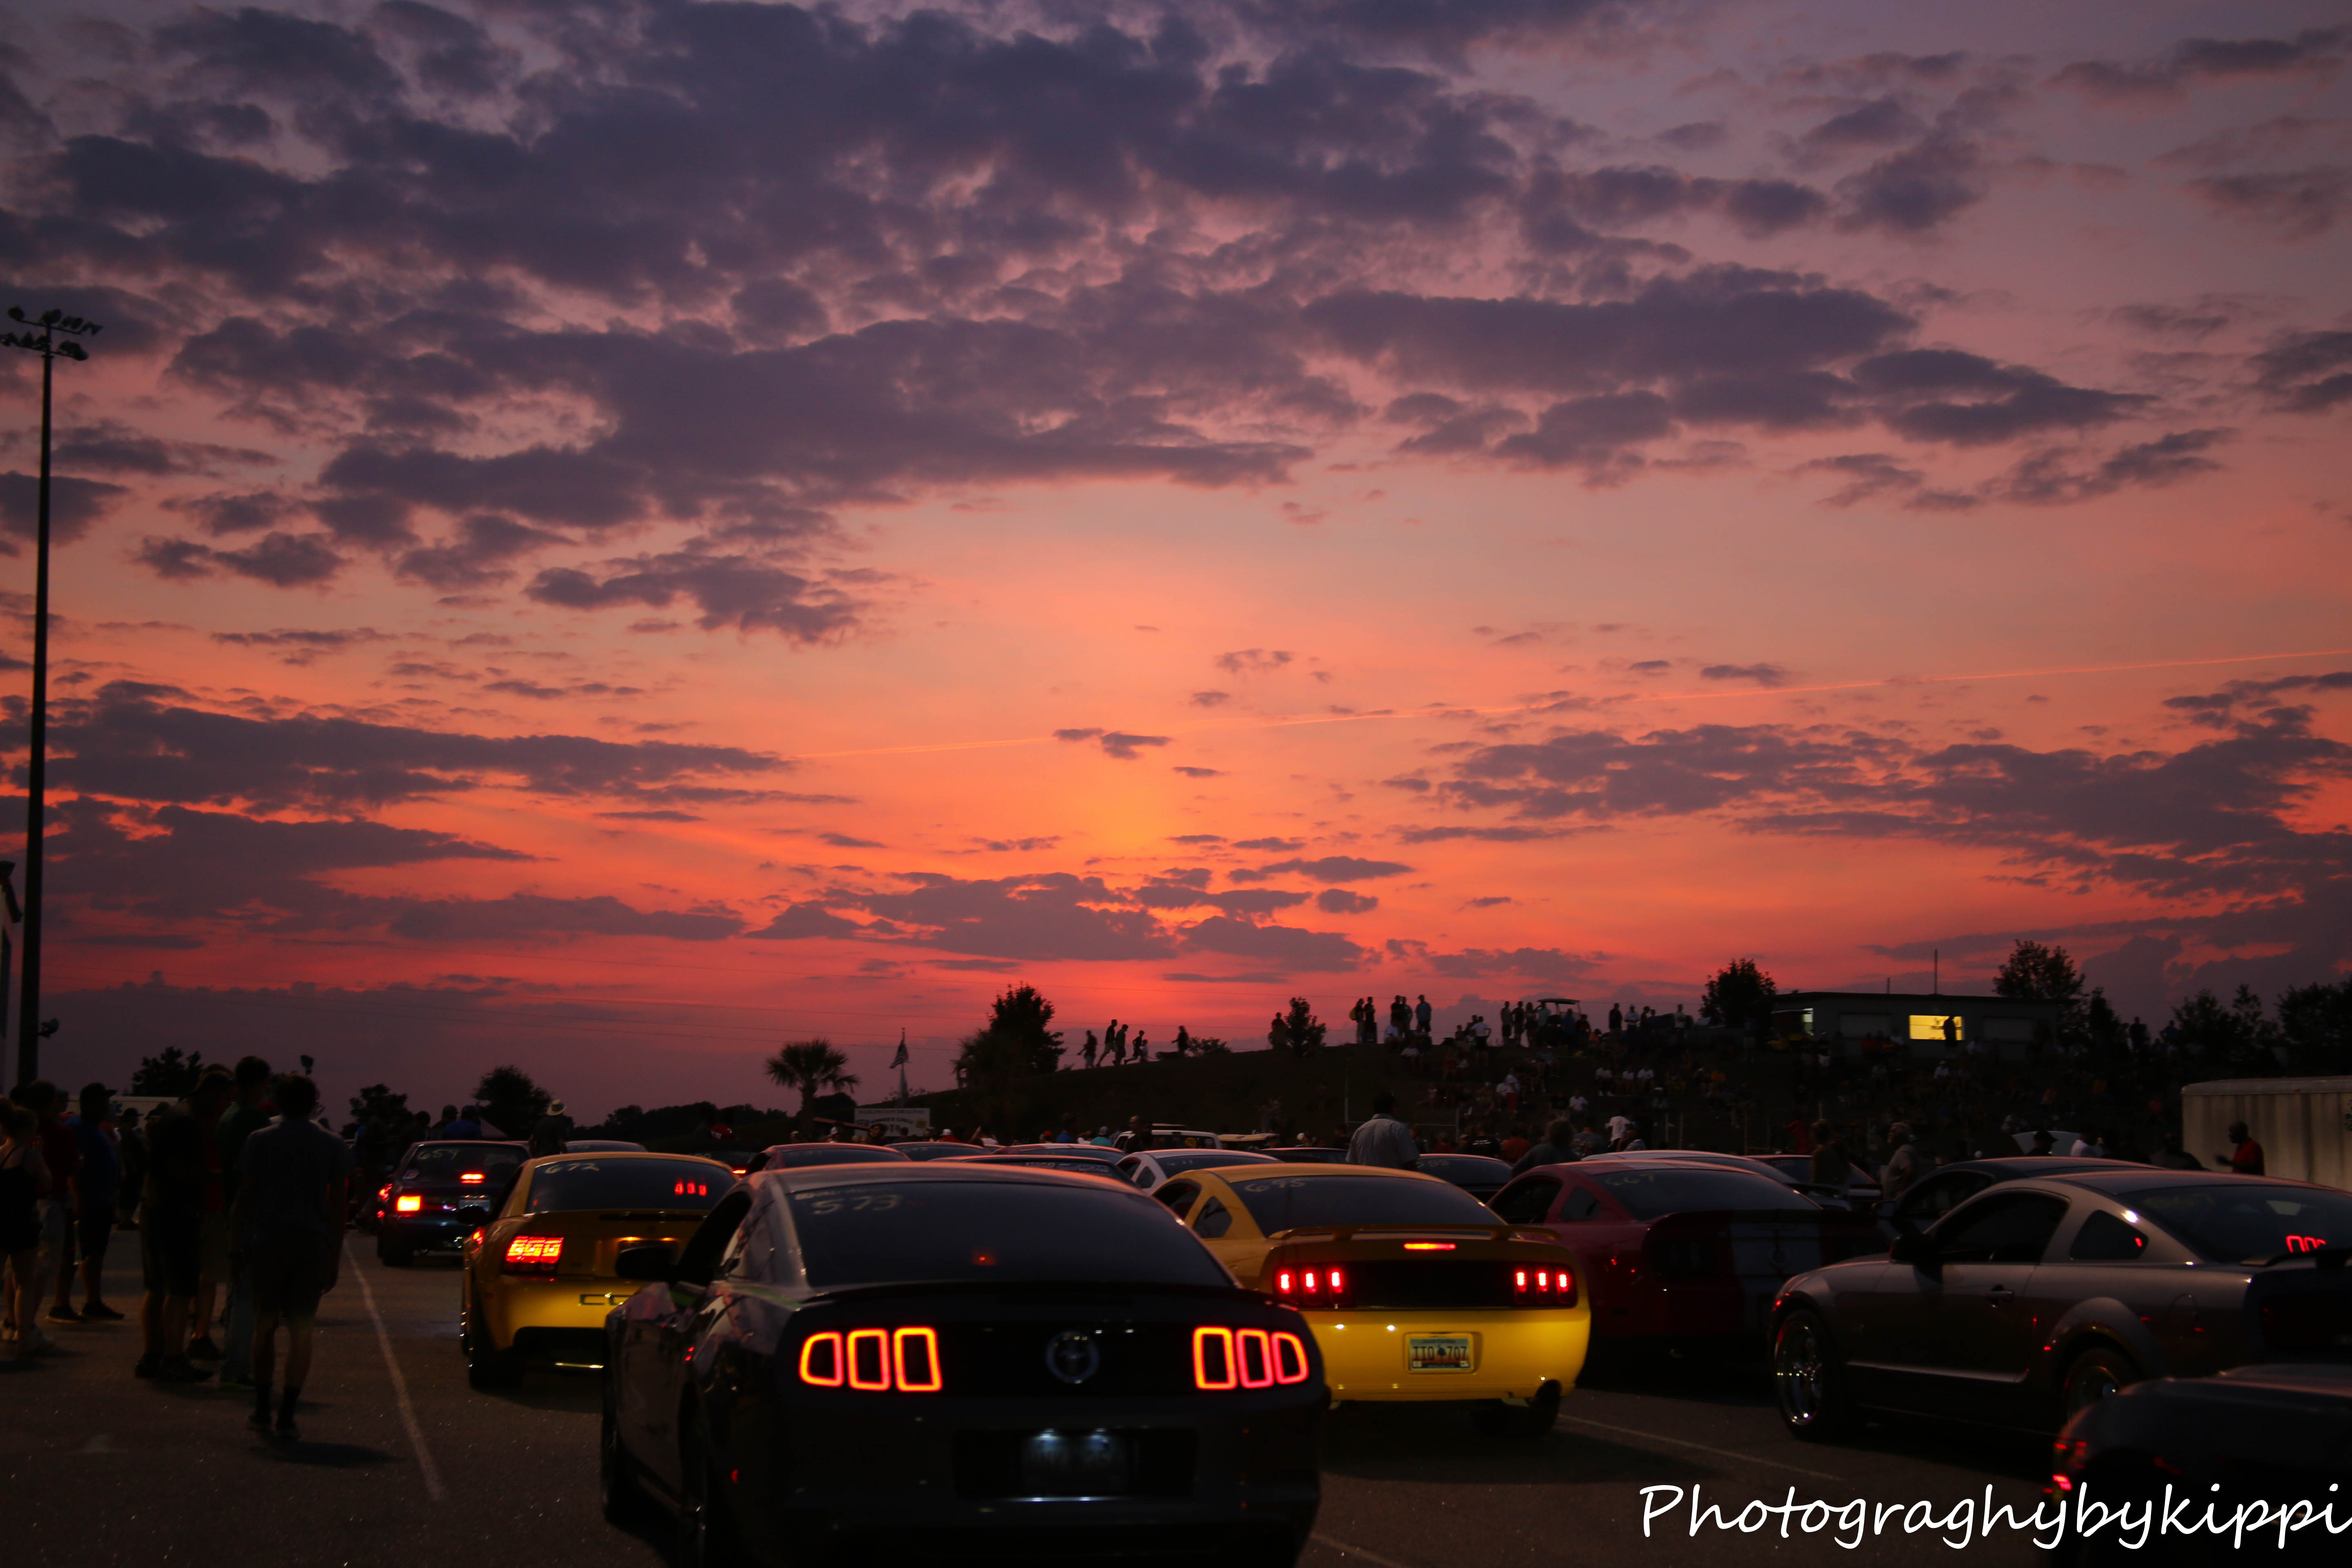 Click image for larger version  Name:Sunset at Dragstrip Mustang week 2015 (1 of 1).jpg Views:26 Size:1.11 MB ID:187655